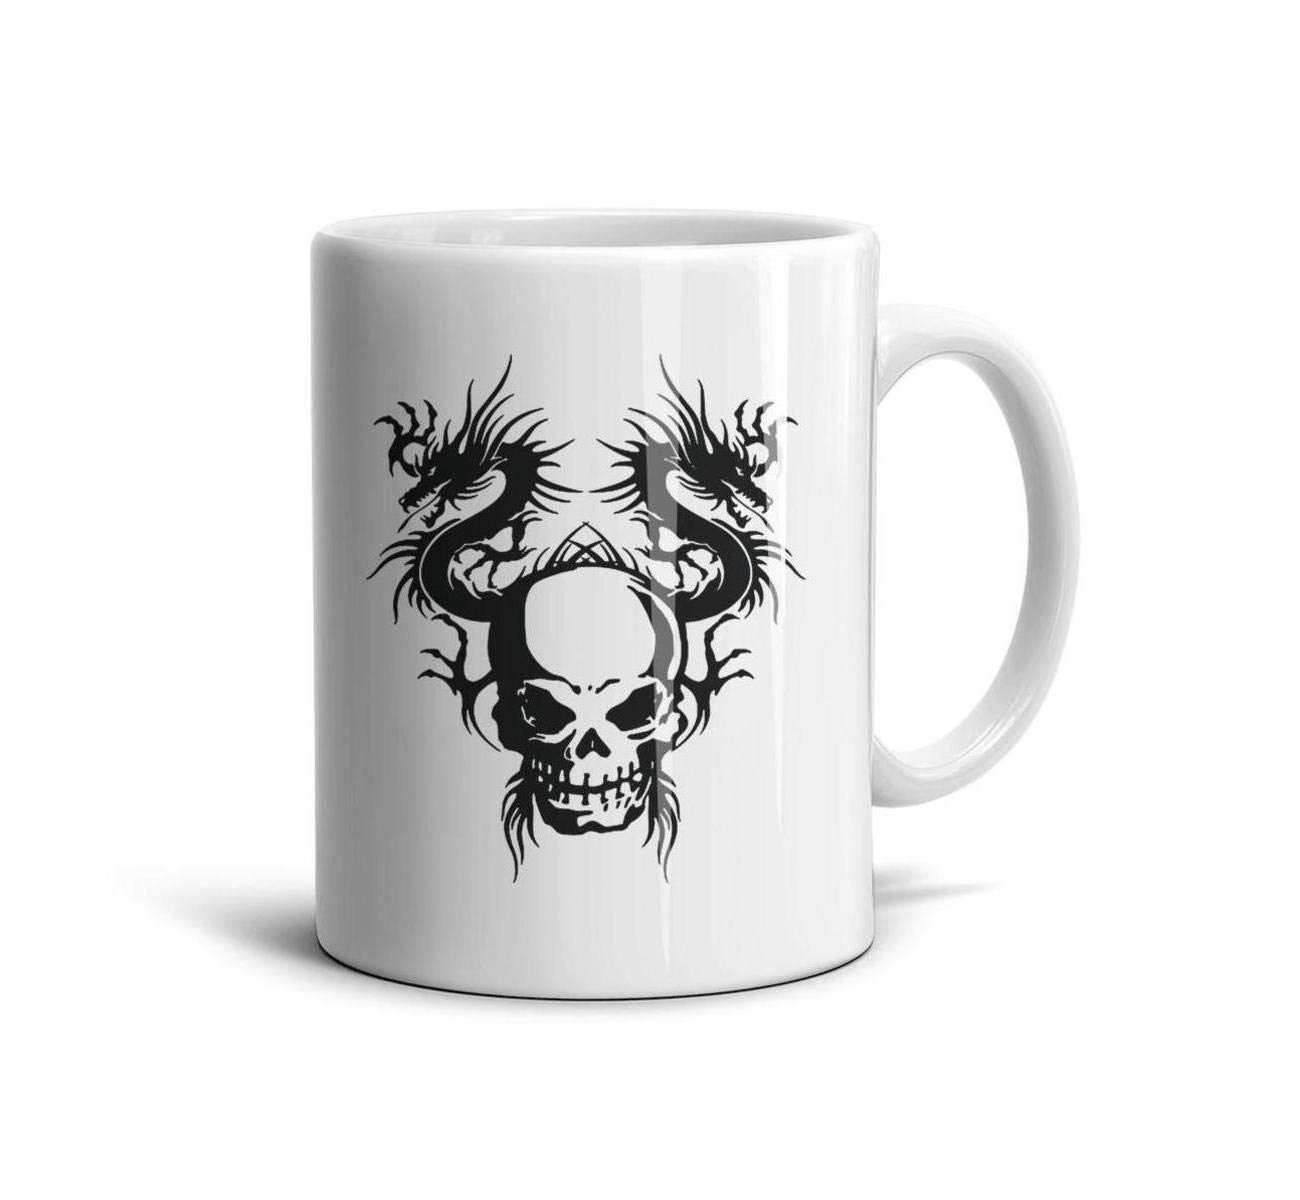 BIAOSD Best Coffee Mug Skull Dragon Funny Mug Gifts Mug Cup 11oz for Men Women